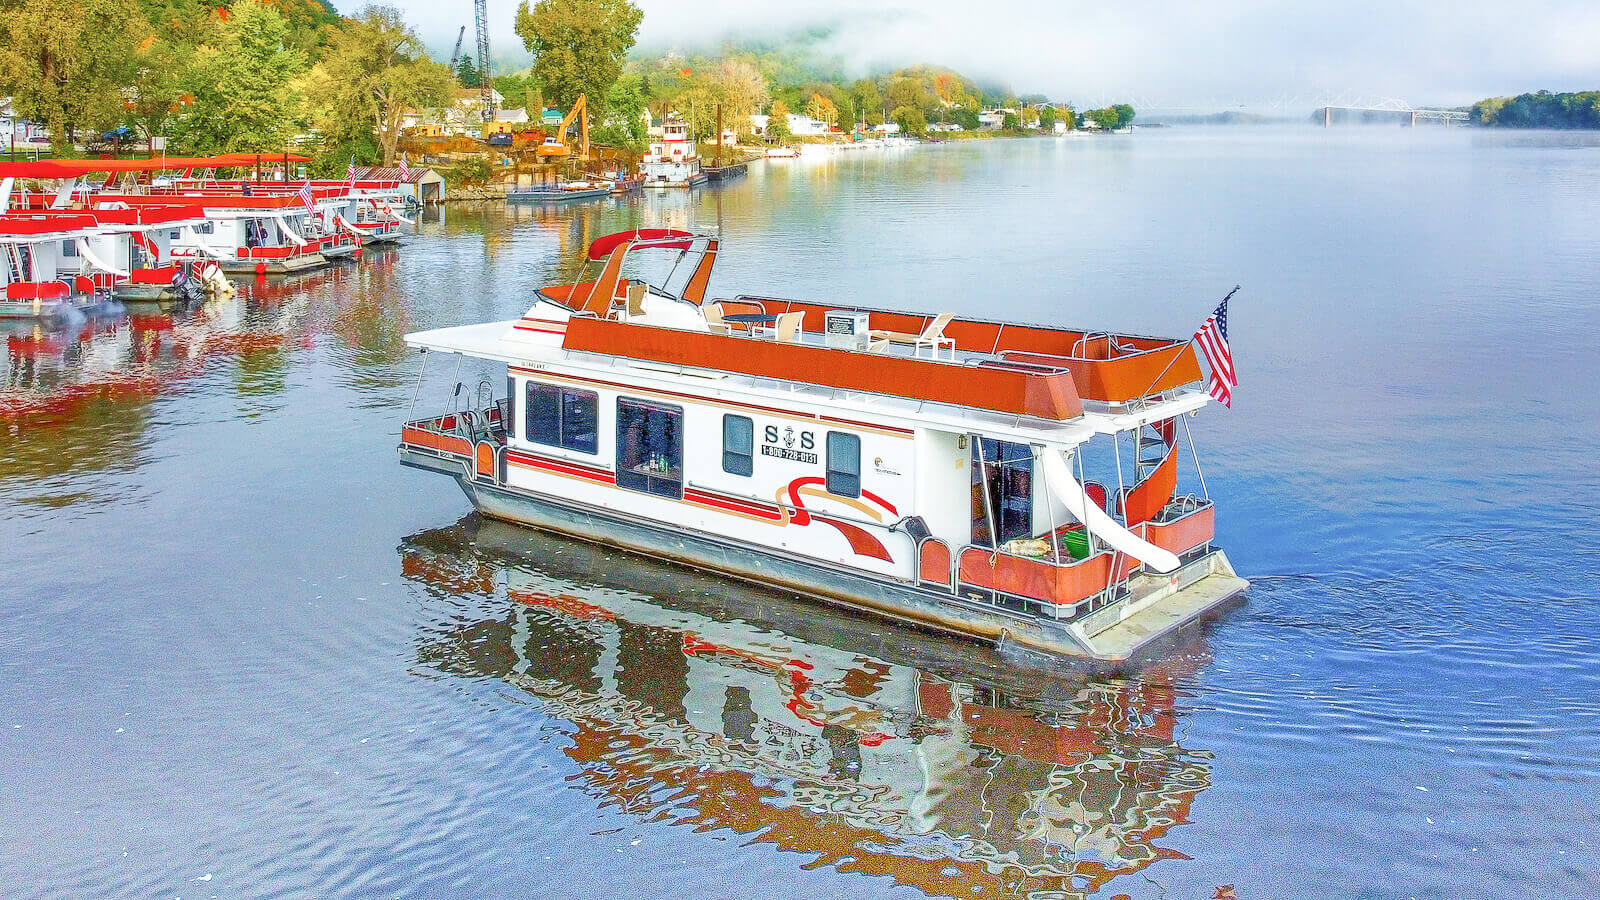 S&S Rentals Sunstar Houseboat in the Mississippi River